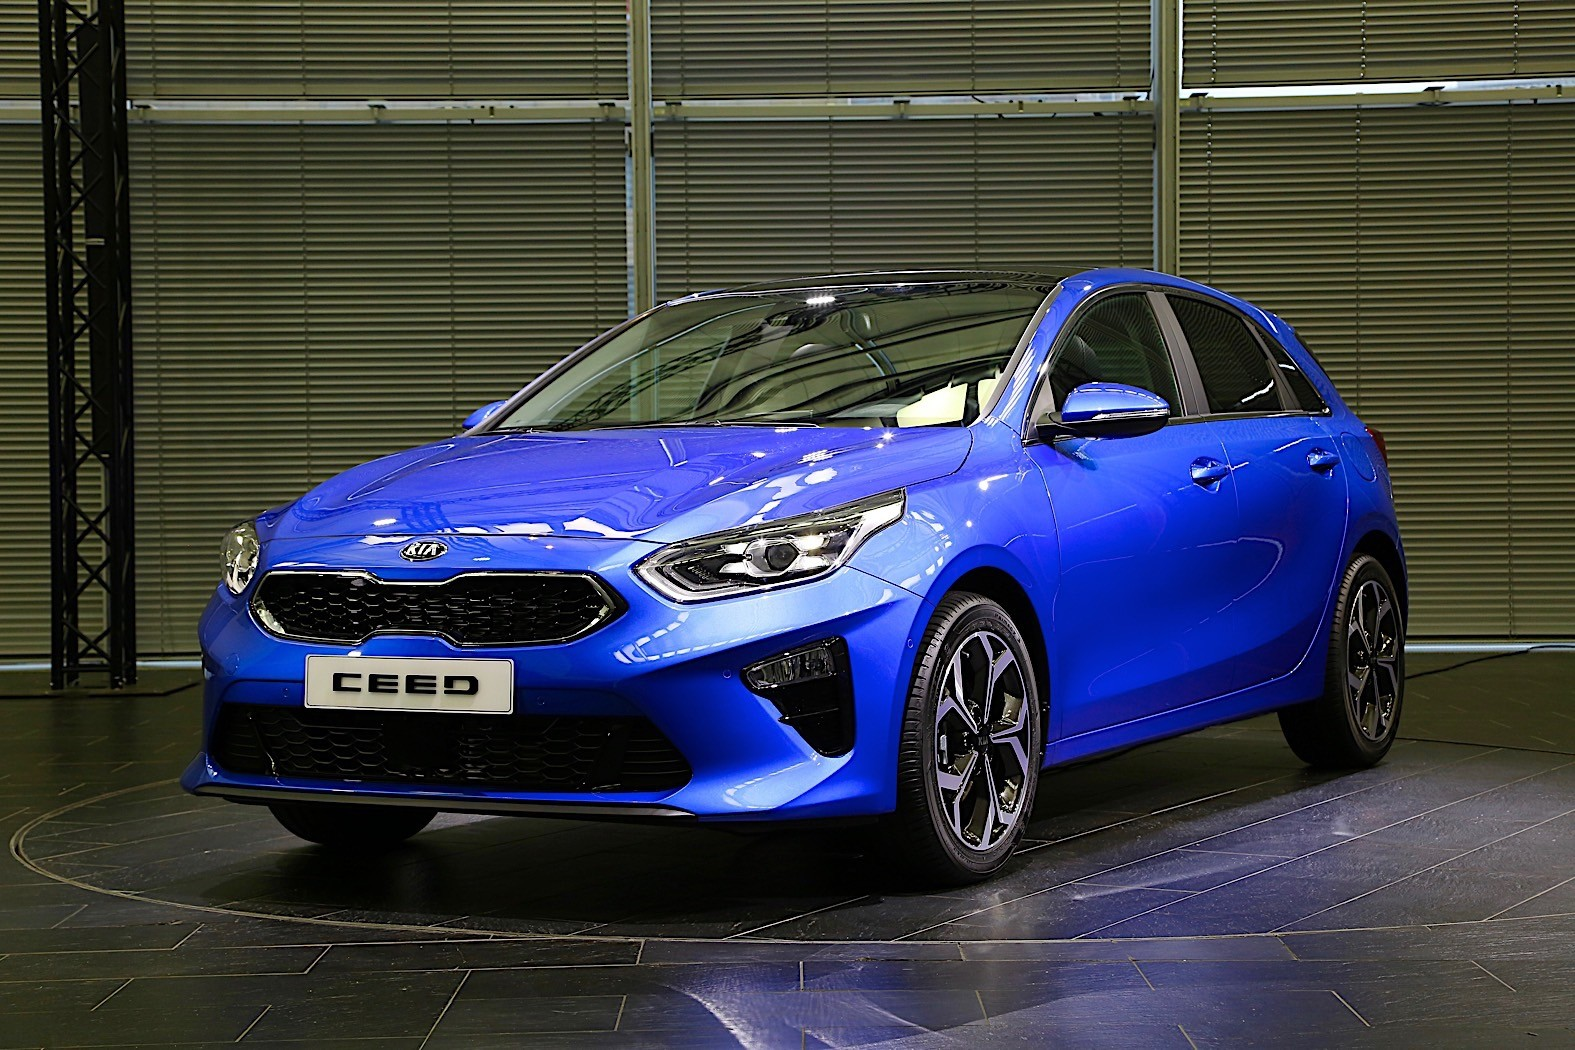 Kia reveal all-new Ceed engineered exclusively for European roads